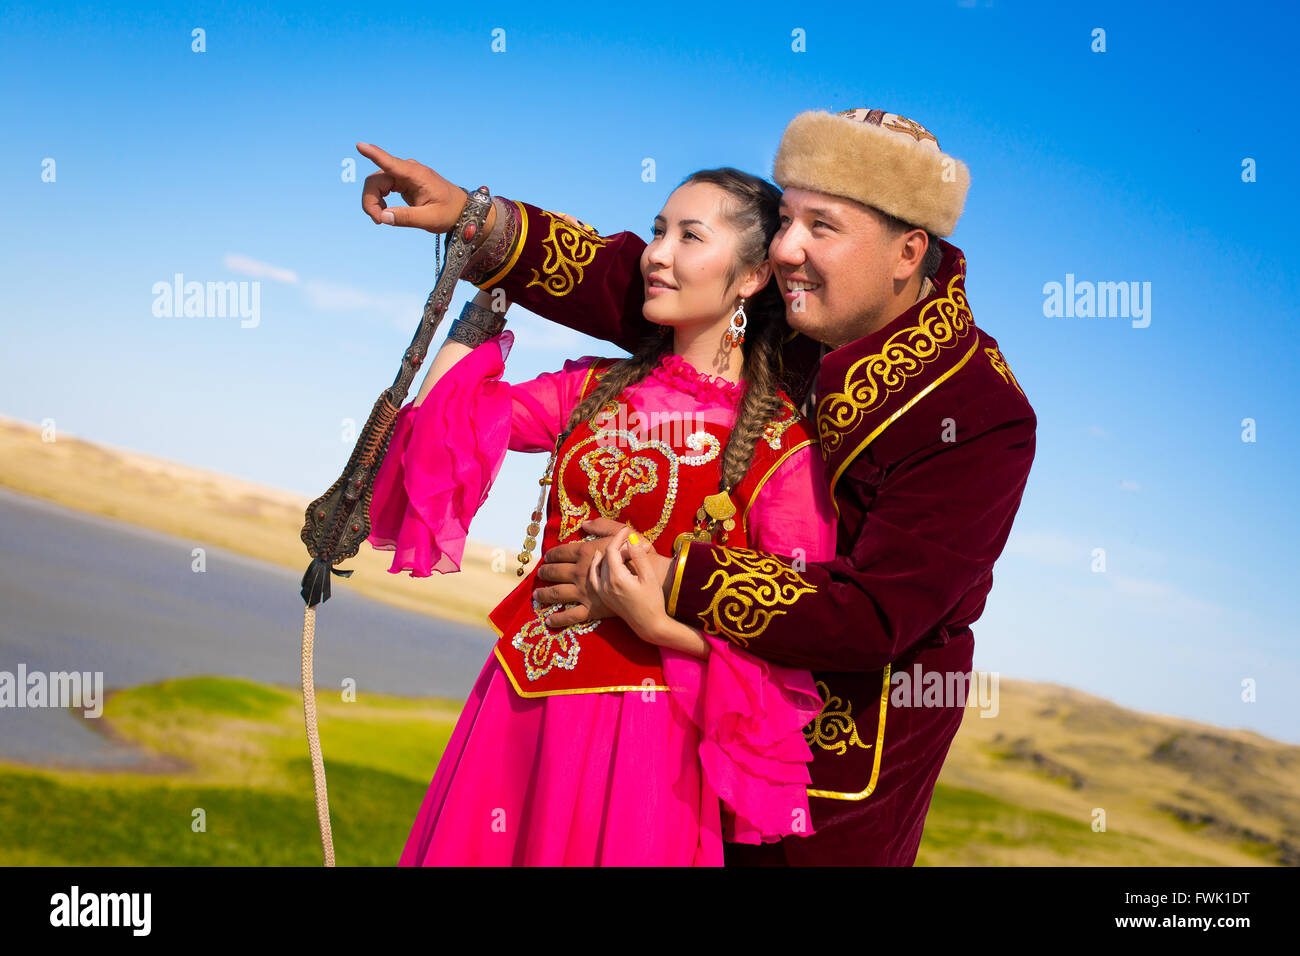 Man and woman together in the steppe in kazakh national costumes - Stock Image